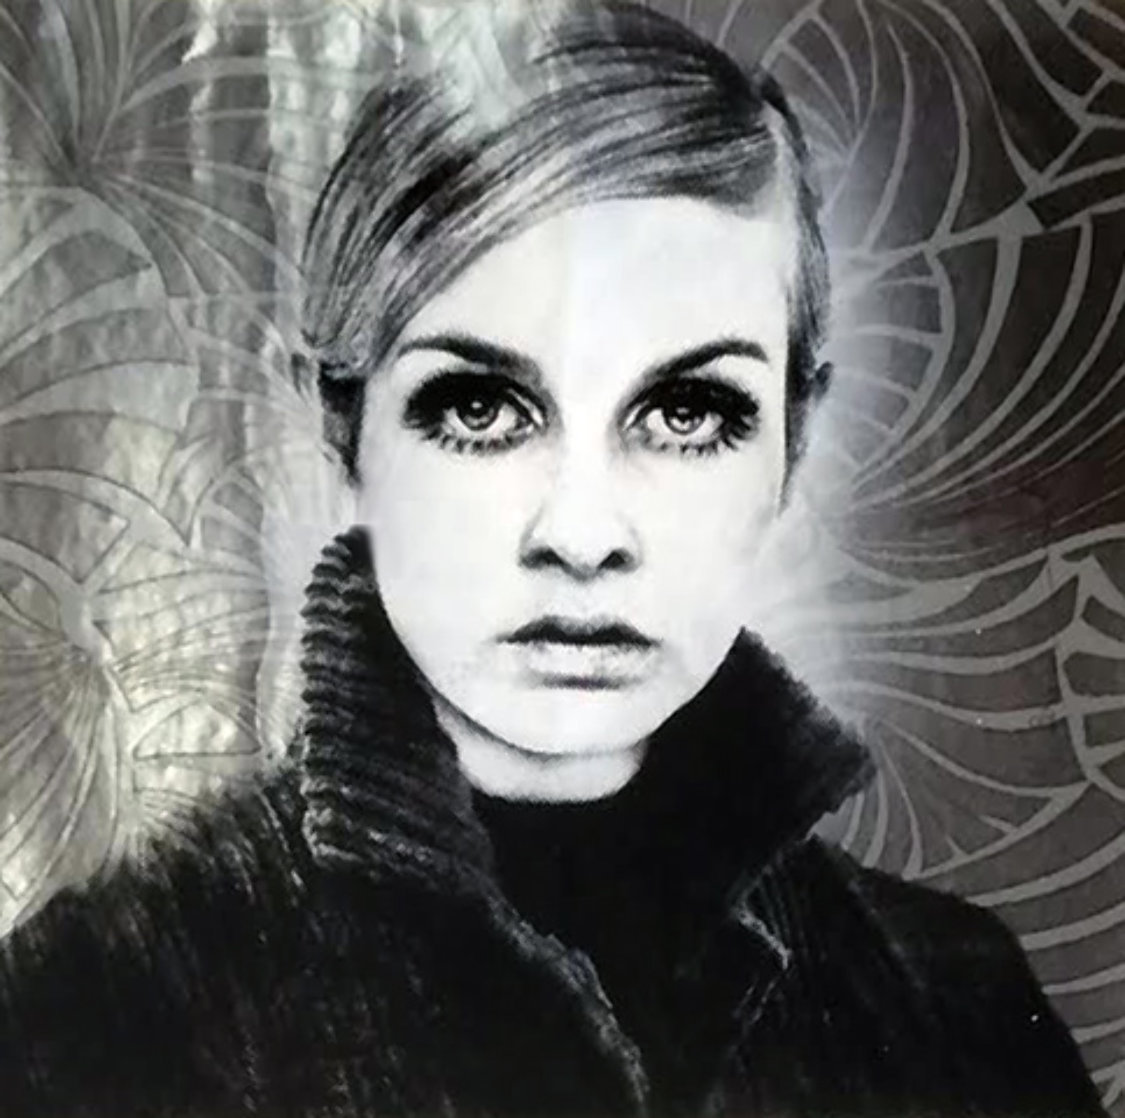 Twiggy 2009 Works on Paper (not prints) by Mr. Brainwash